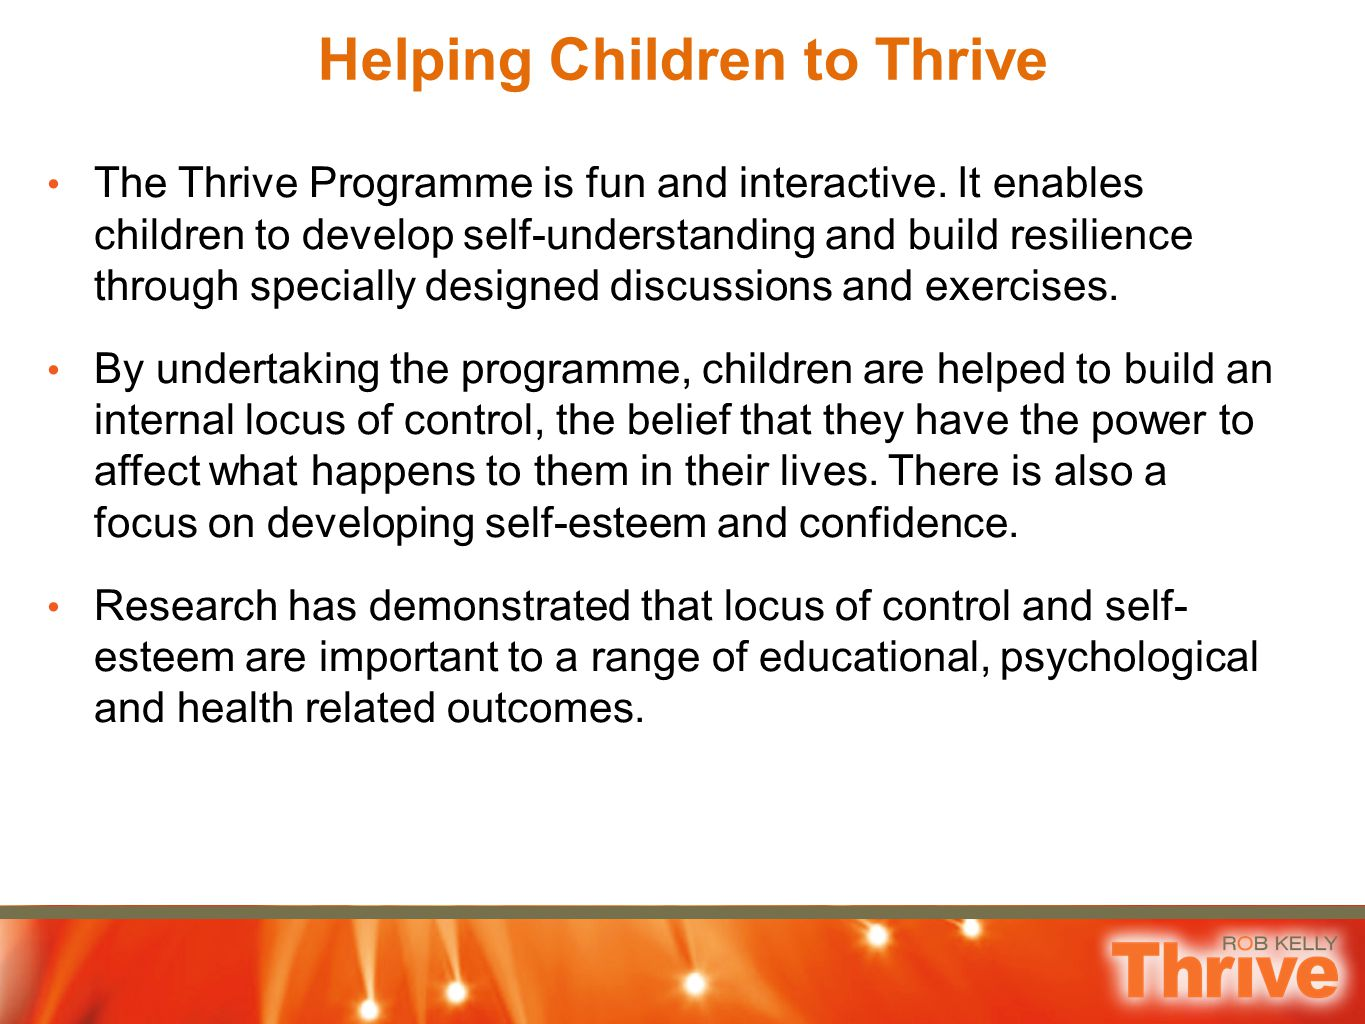 Helping Children to Thrive The Thrive Programme is fun and interactive. It enables children to develop self-understanding and build resilience through